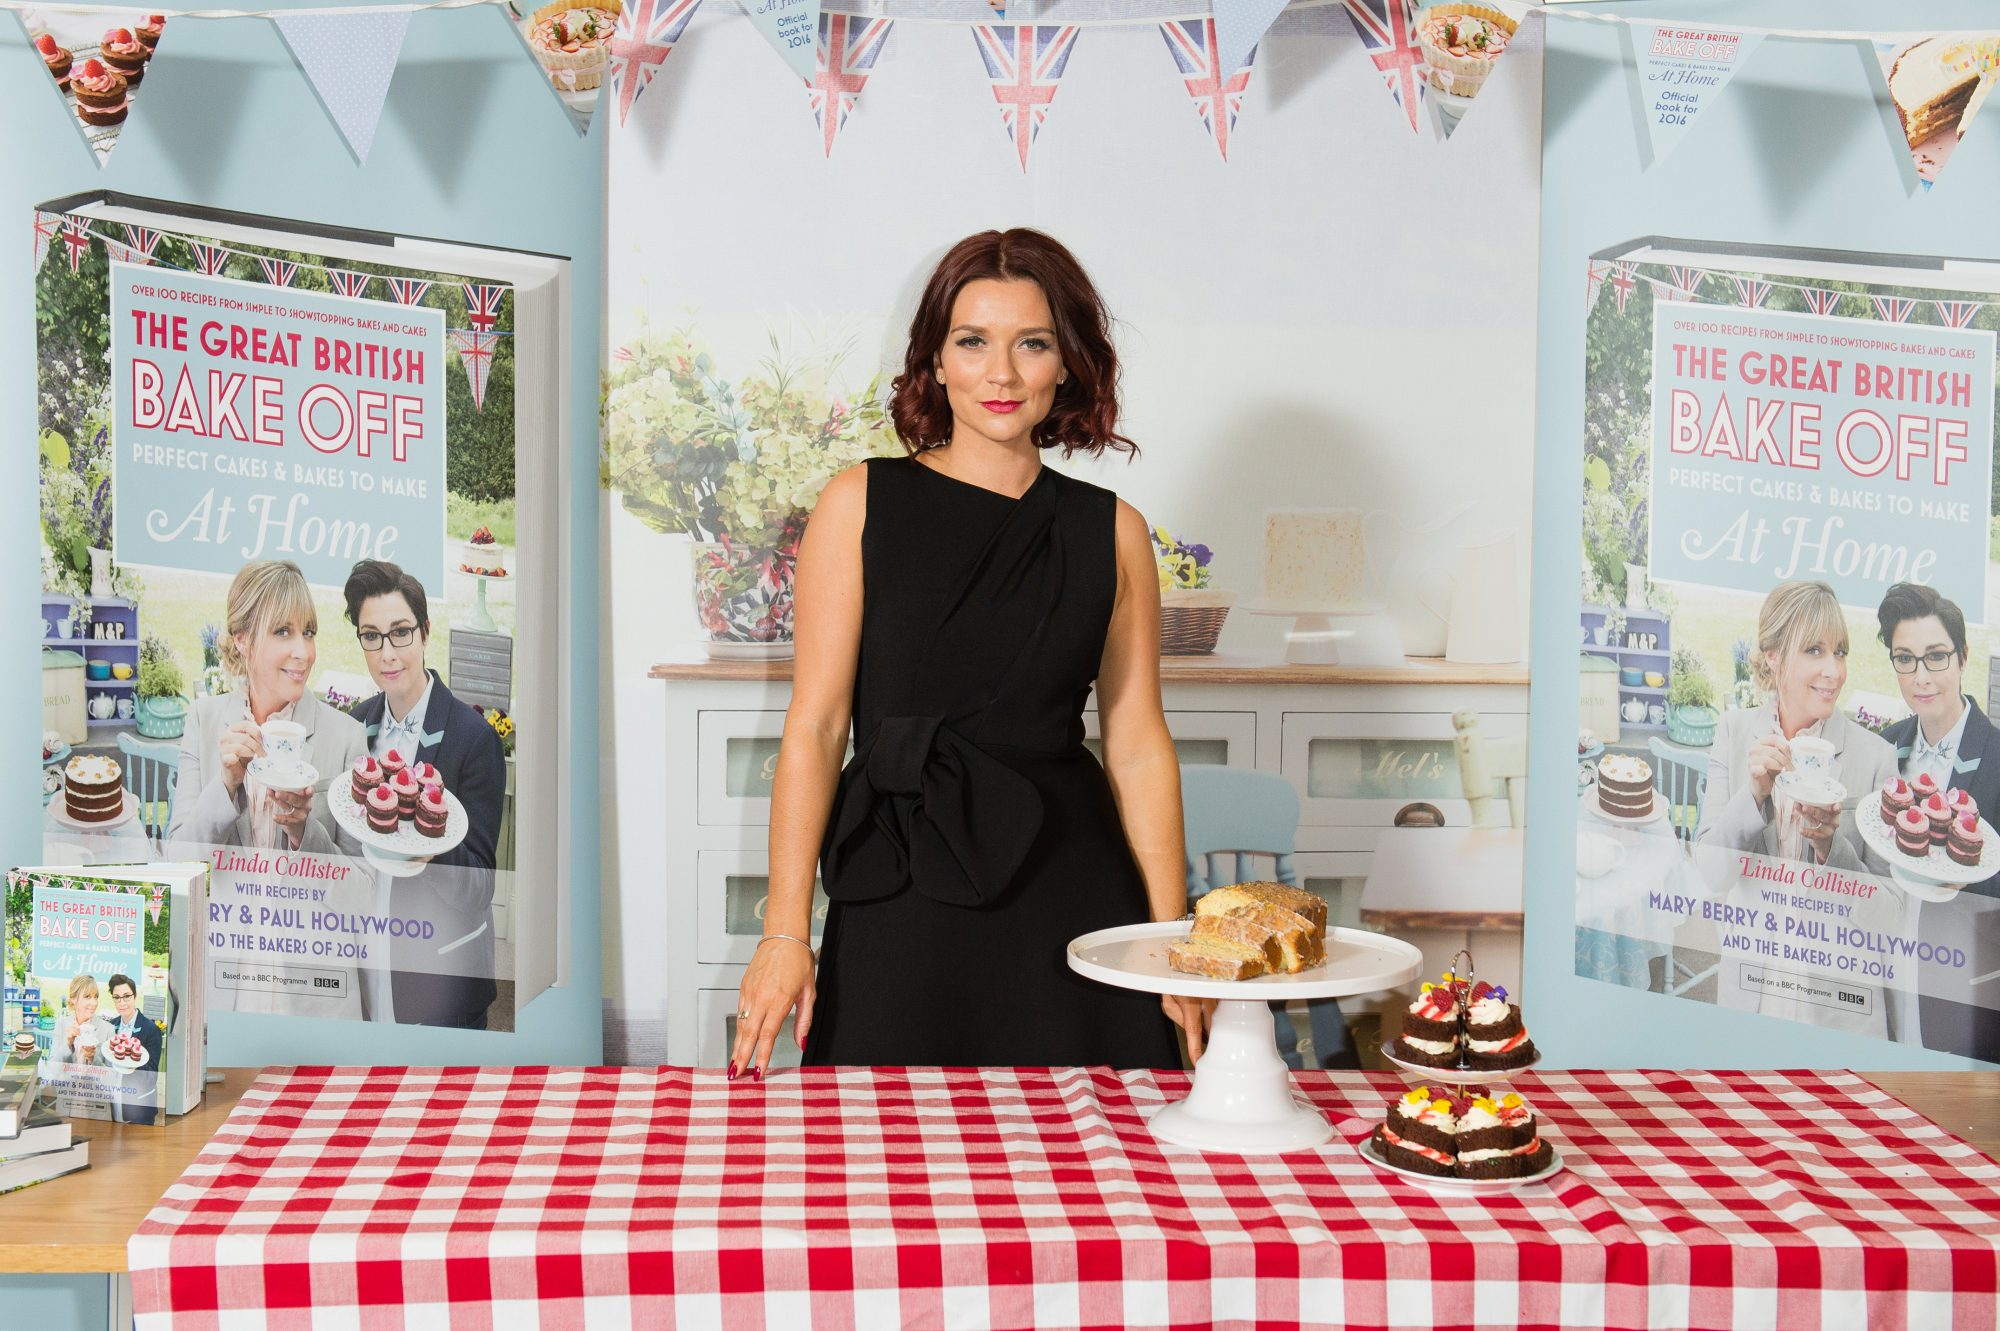 Great British Bake Off winner Candice Brown signs copies of 'The Great British Bake Off: Perfect Cakes & Bakes to Make at Home' at Waterstones, Piccadilly on October 27, 2016 in London, England.